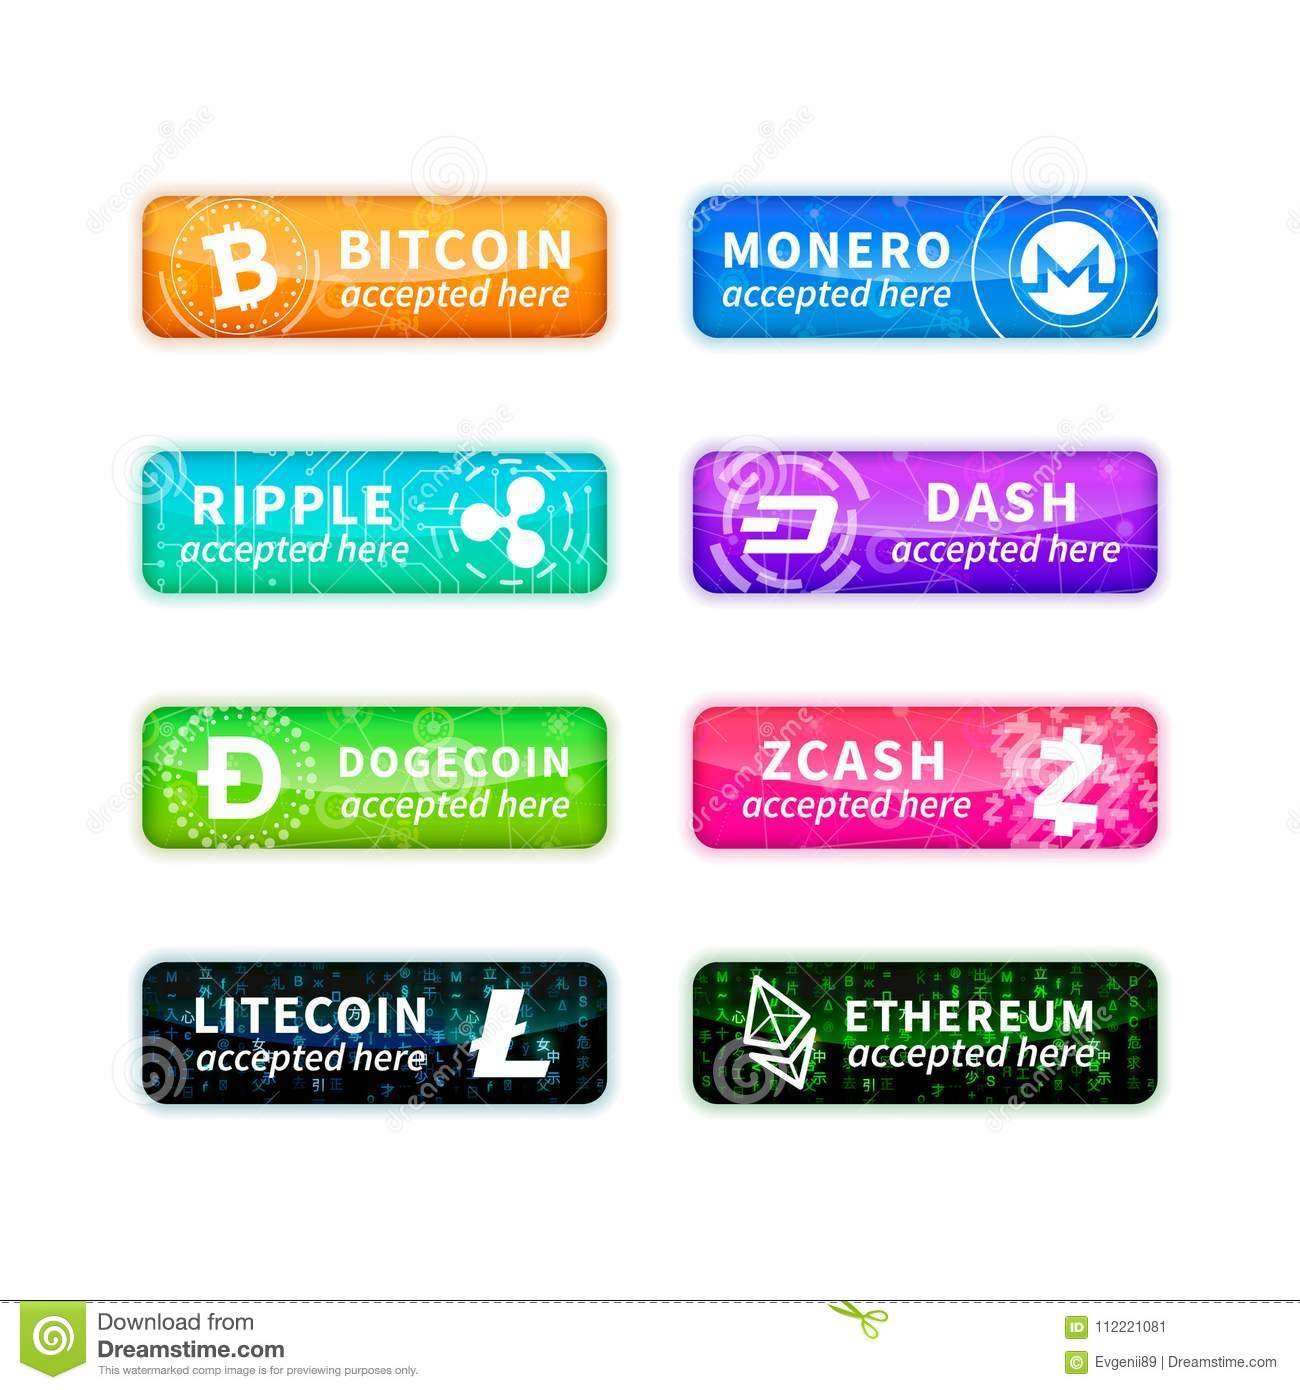 most accepted cryptocurrency